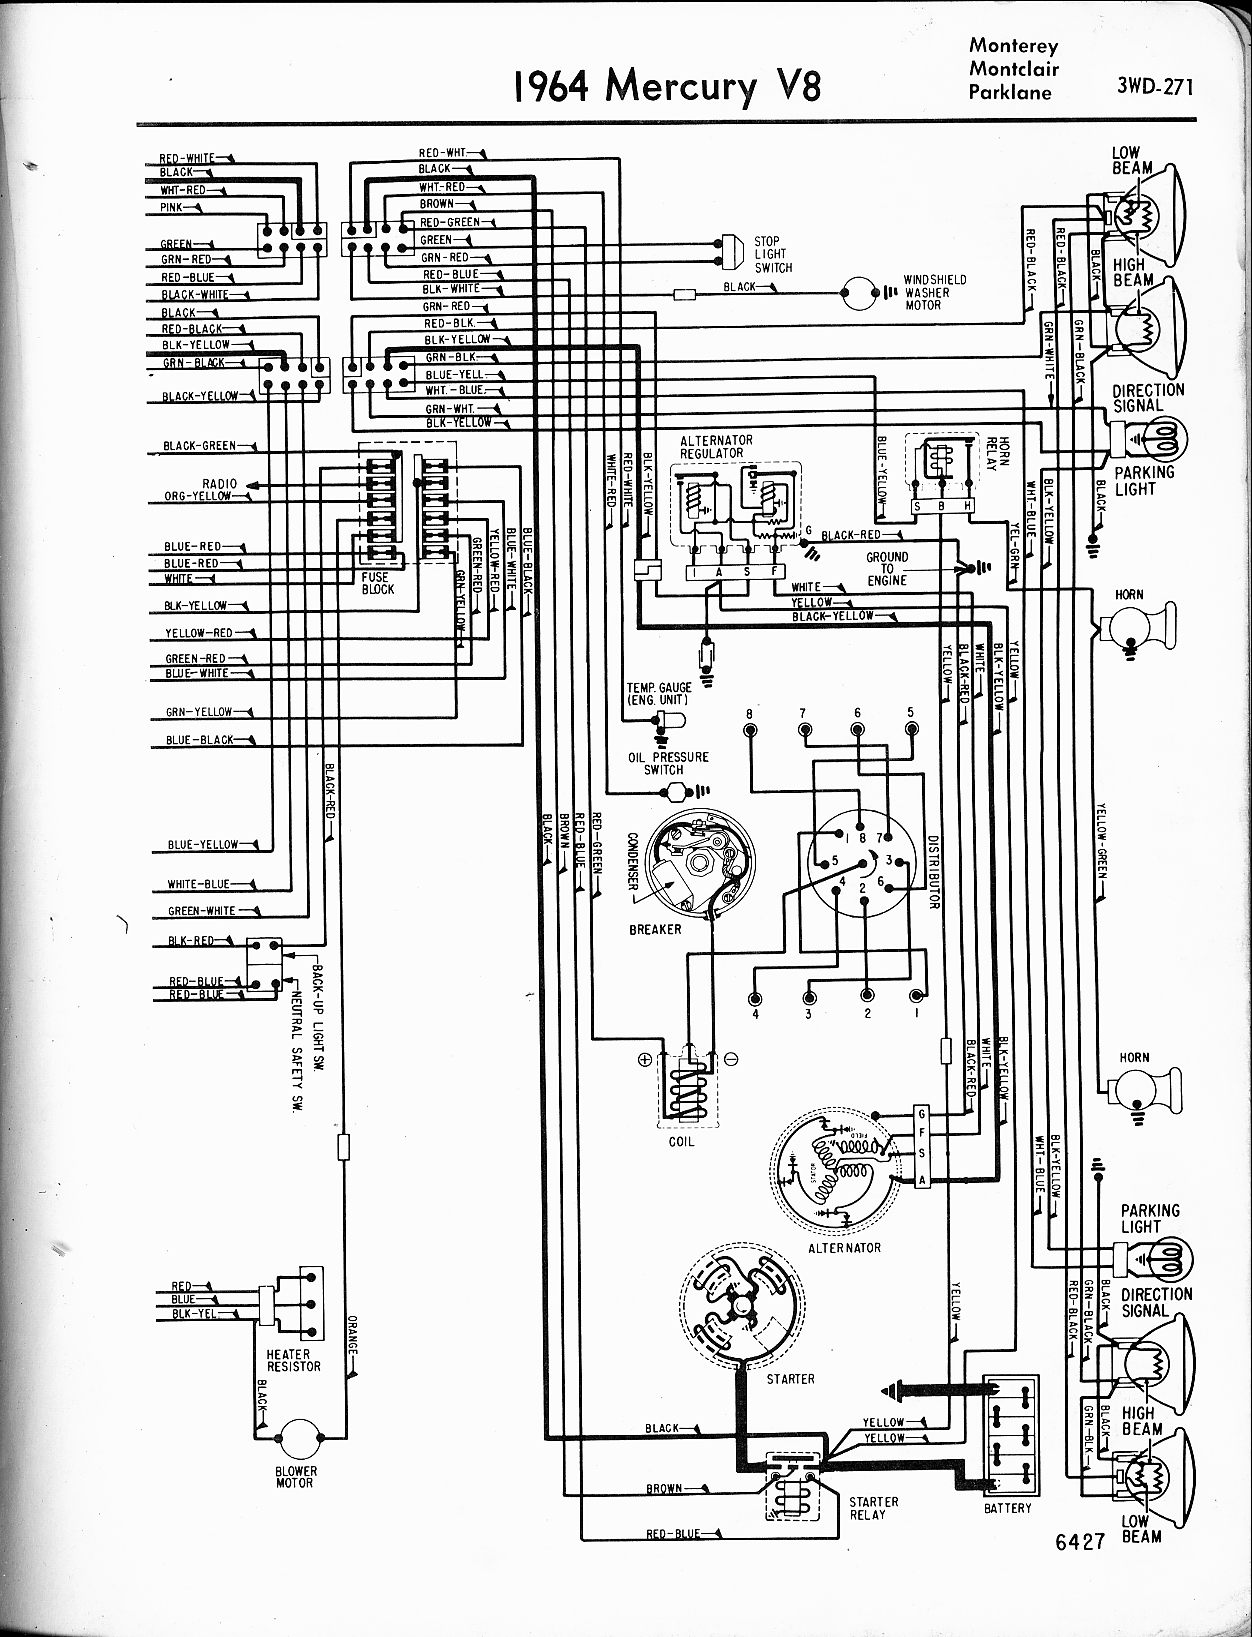 580939 Headlight Relays Questions also Mercuryindex in addition 48avy Ford Thunderbird Fuse Wires Turn Signals additionally Lincoln All Models 1965 Windows Wiring also 88 Chevy Truck Wiper Motor Wiring Diagram. on 1955 ford fairlane wiring diagram